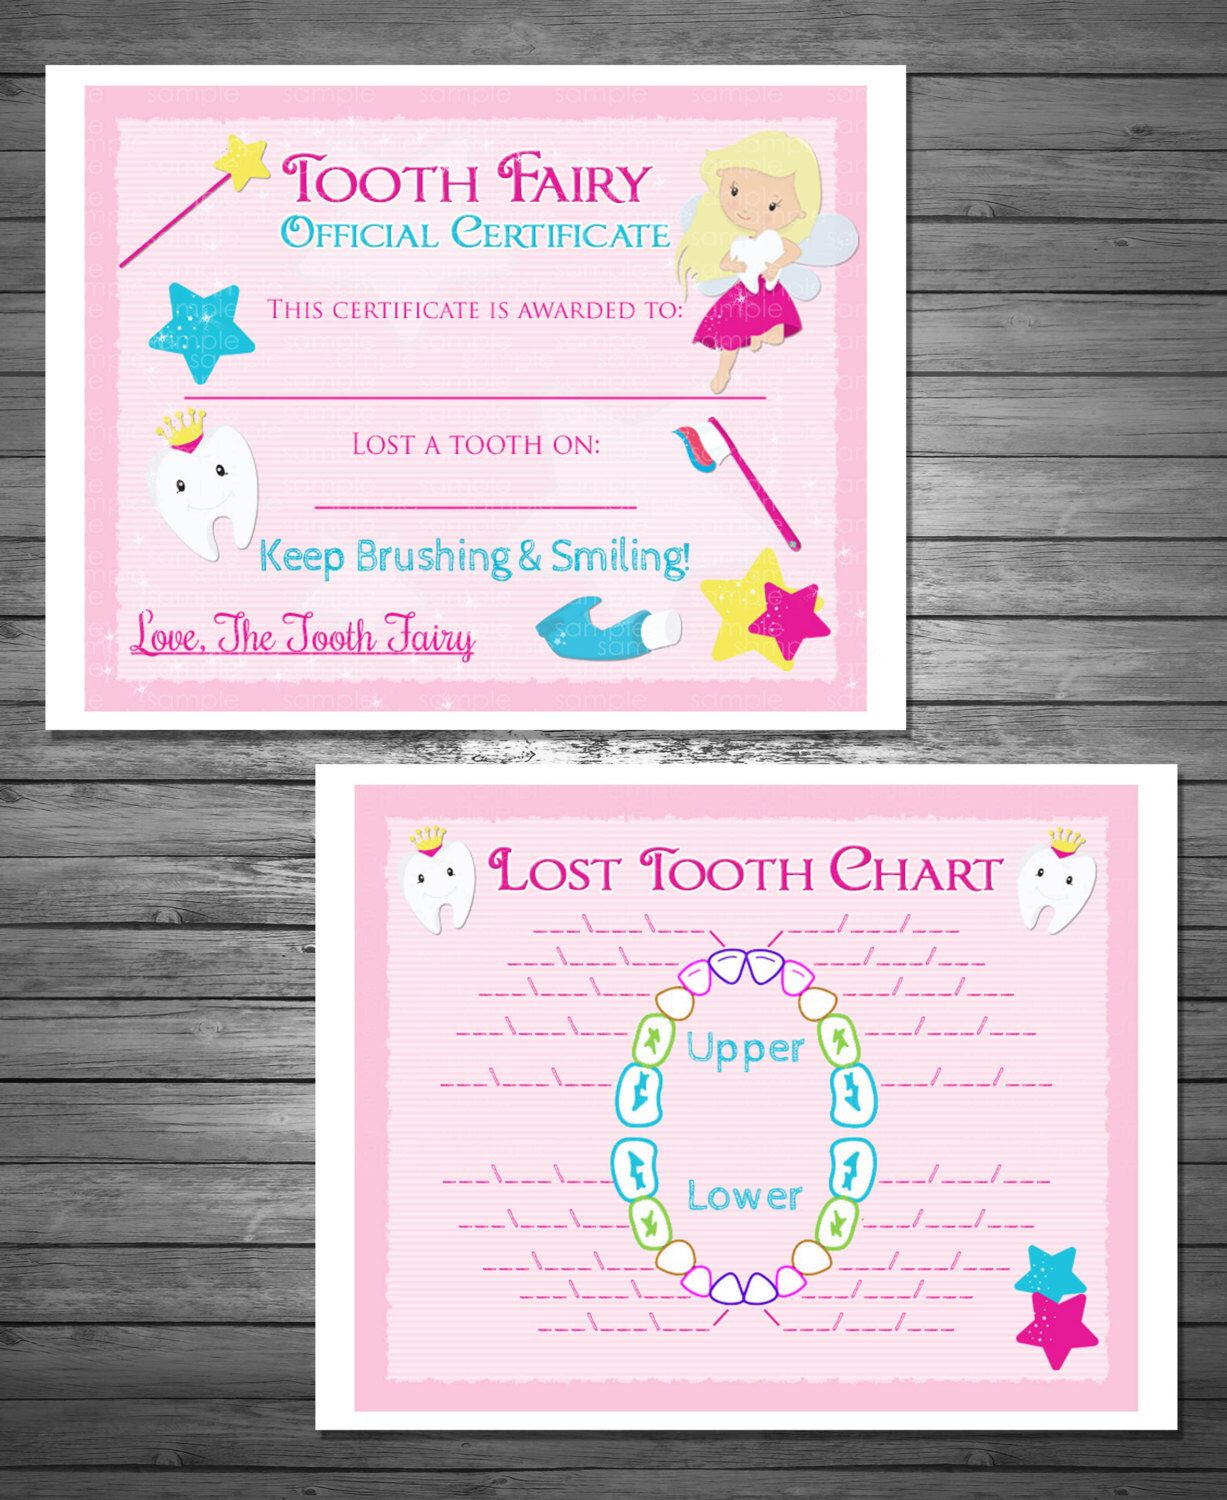 Tooth Fairy Certificate And Lost Tooth Chart Printable File